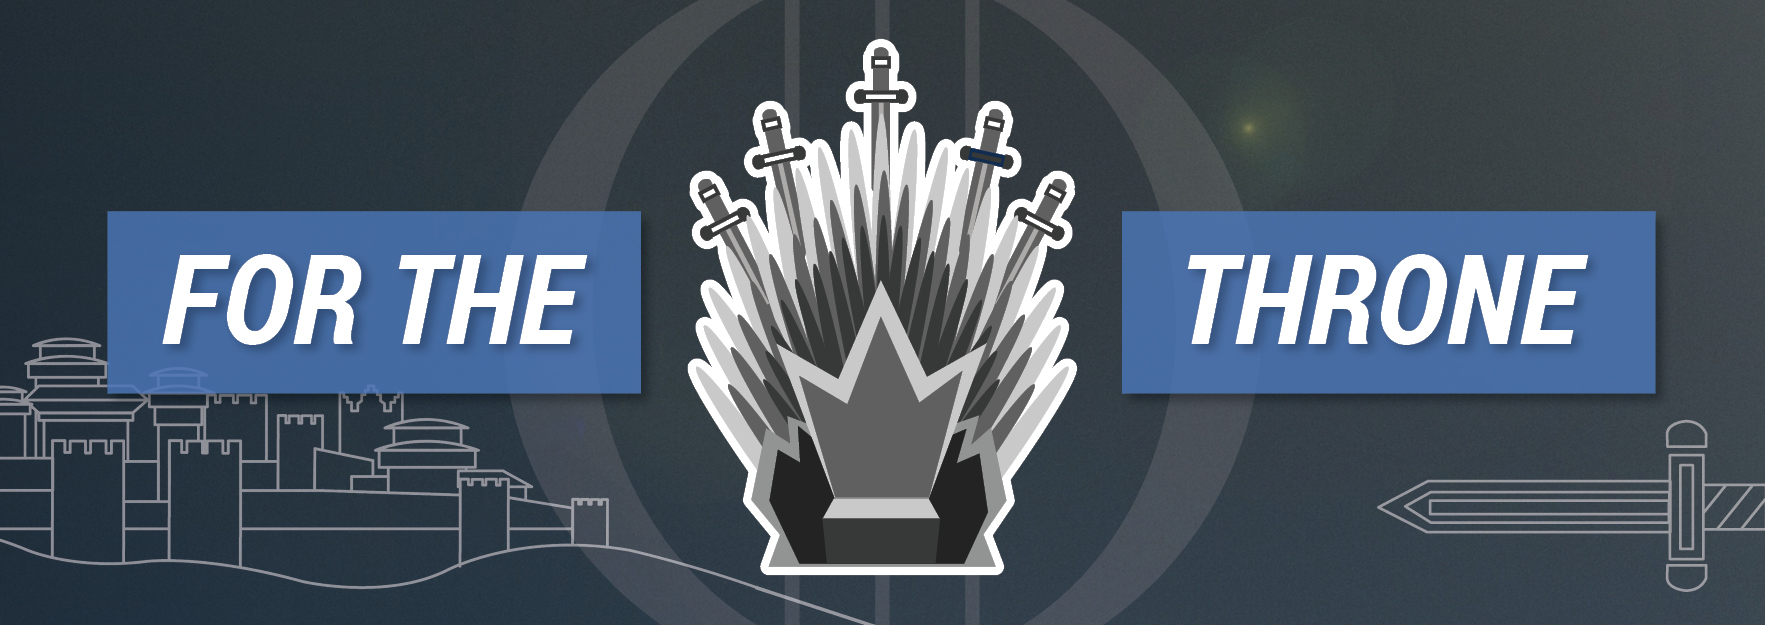 Stylised Iron Throne from Game of Thrones